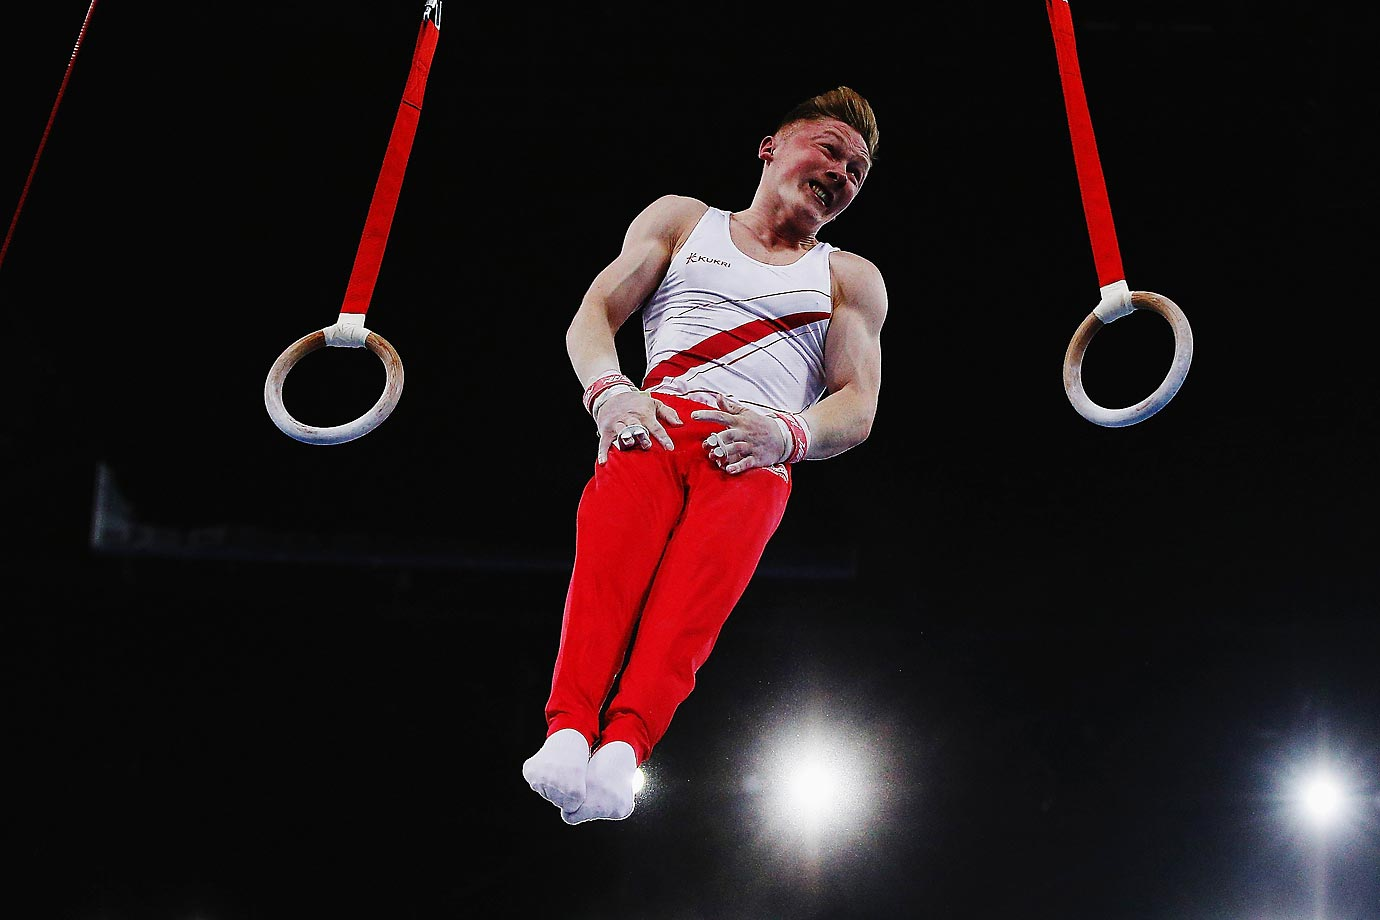 Gymnast Nile Wilson of England seemingly hovers in the air before landing to finish his routine at the Team Final and Individual Qualification at the Glasgow Commonwealth Games.